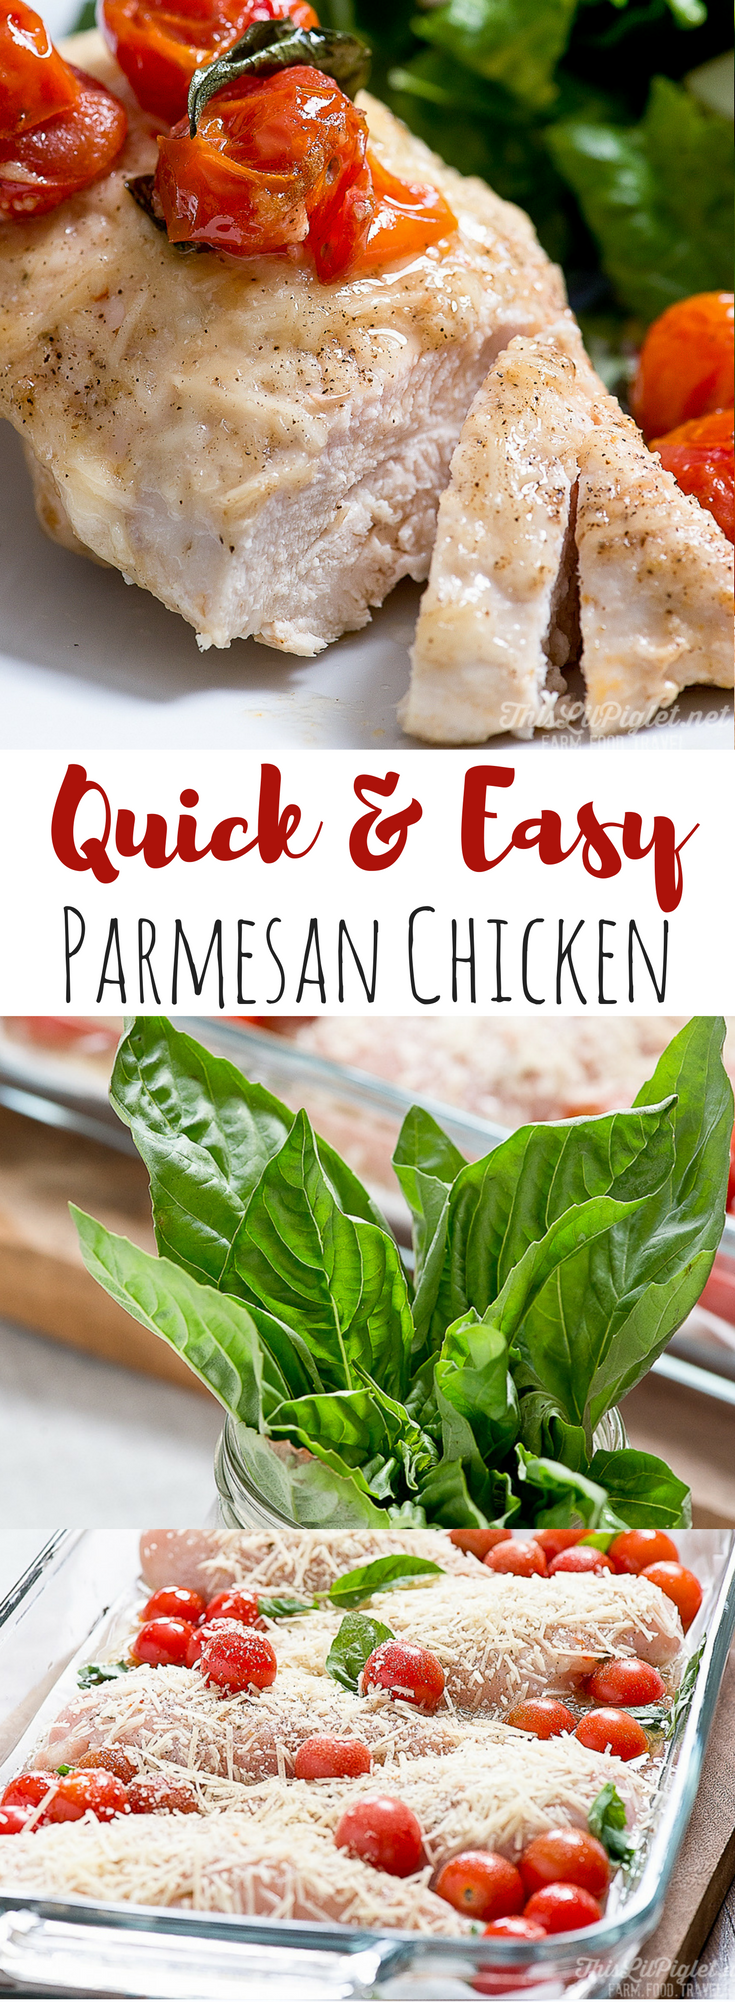 Quick and Easy Parmesan Chicken // via @thislilpiglet